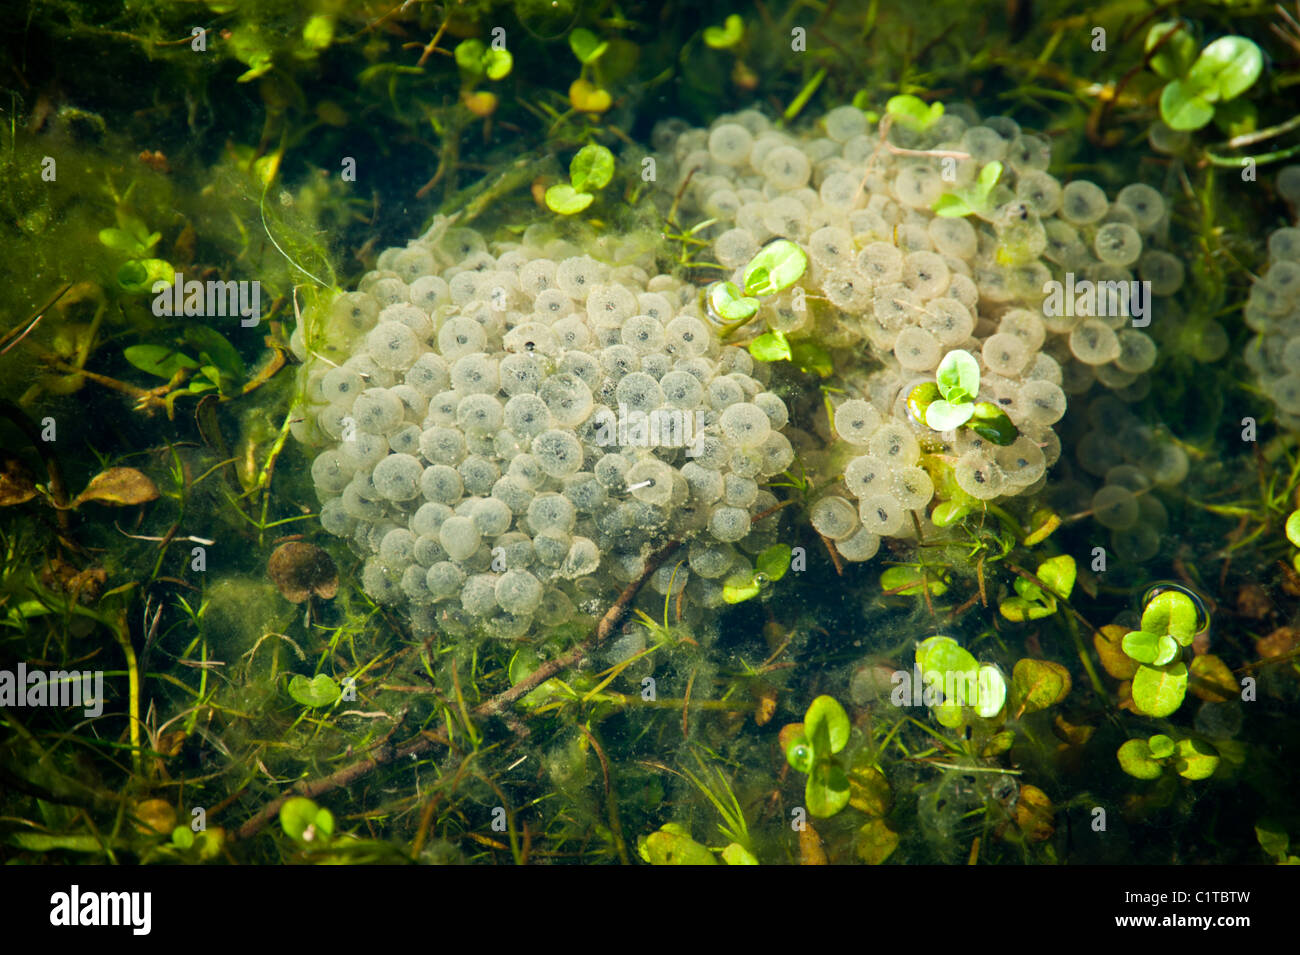 Frogspawn in clumps amid pond weeds in sunlight. - Stock Image